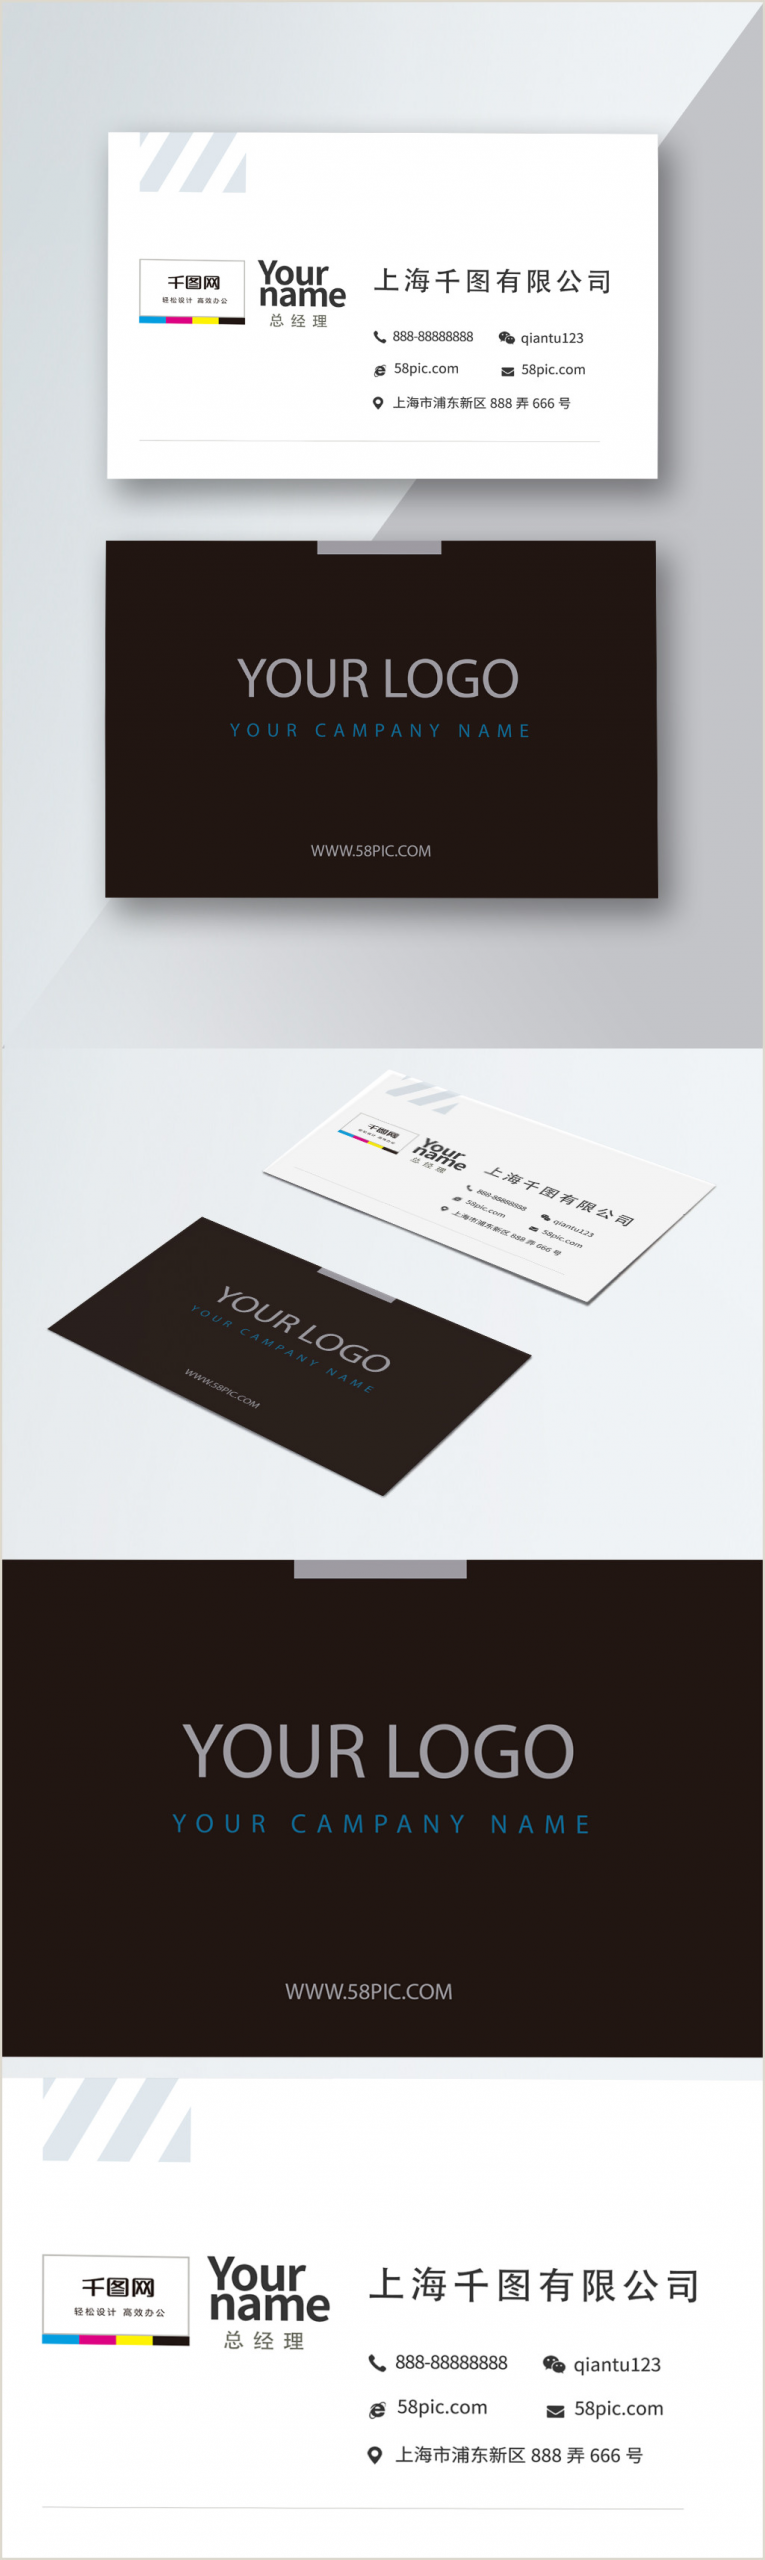 Business Card With Sticker On Back Black And White Business Senior Business Card With Qr Code